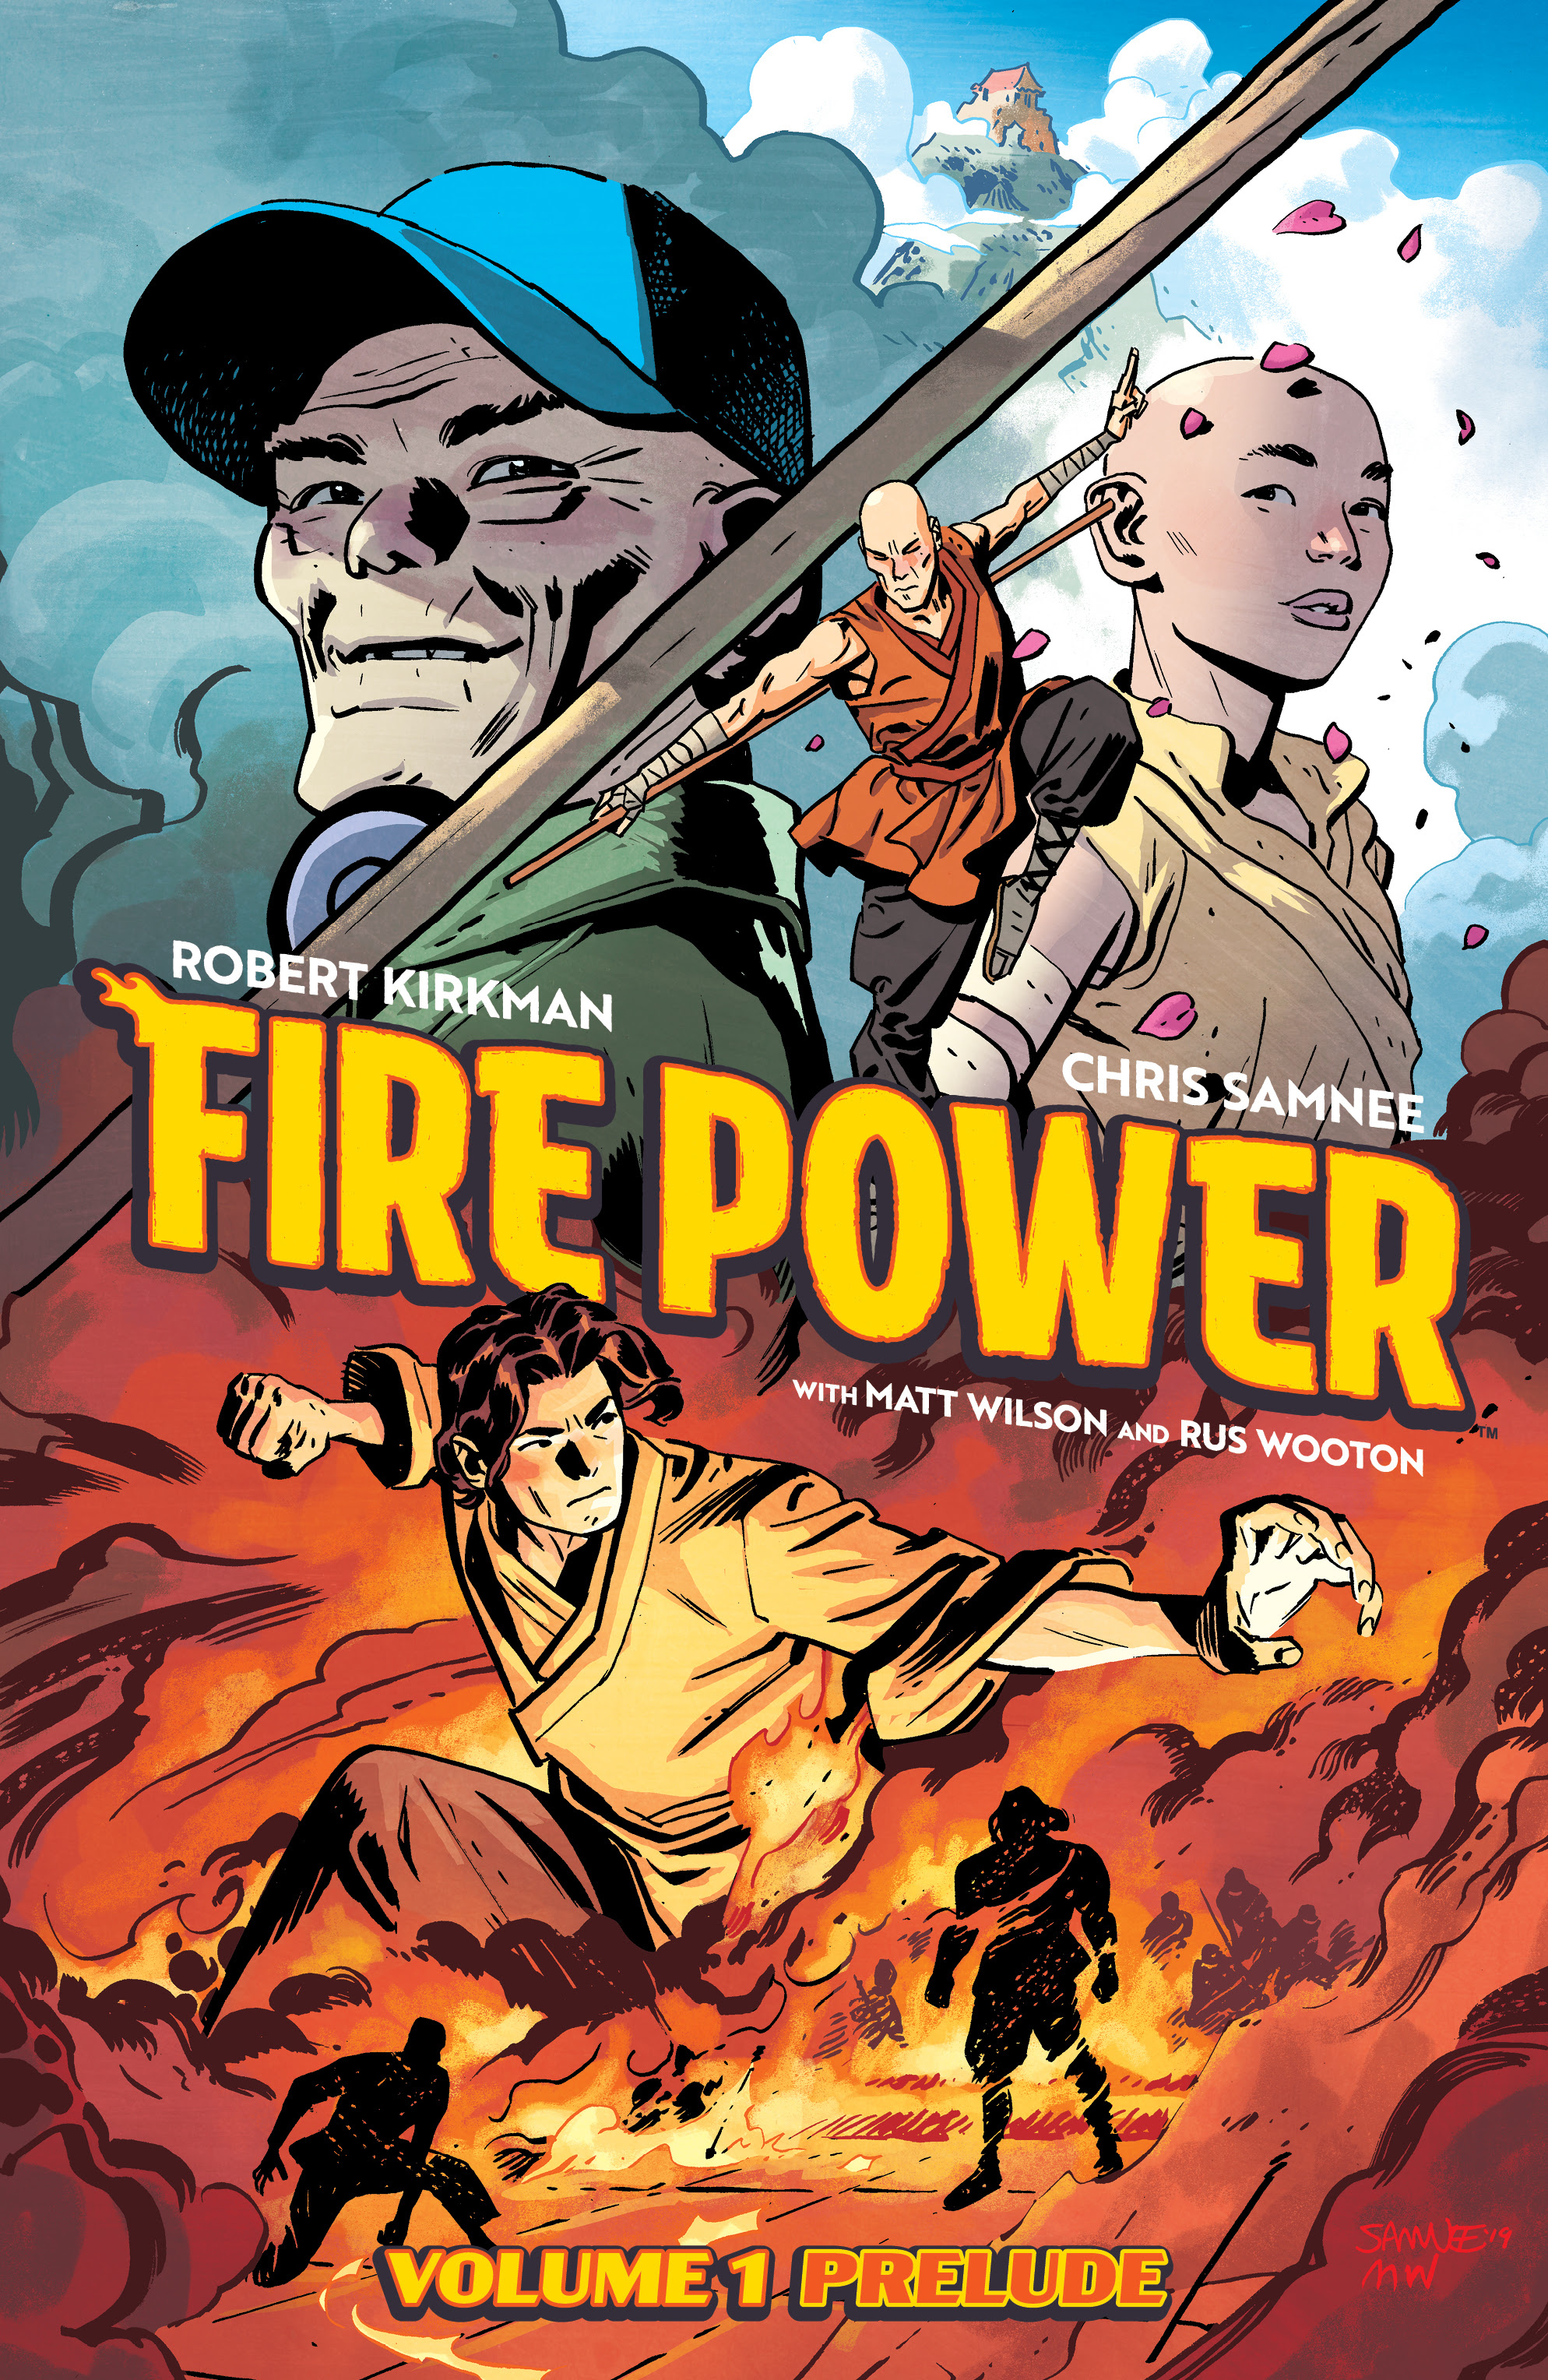 Image announces 'Fire Power' prelude graphic novel